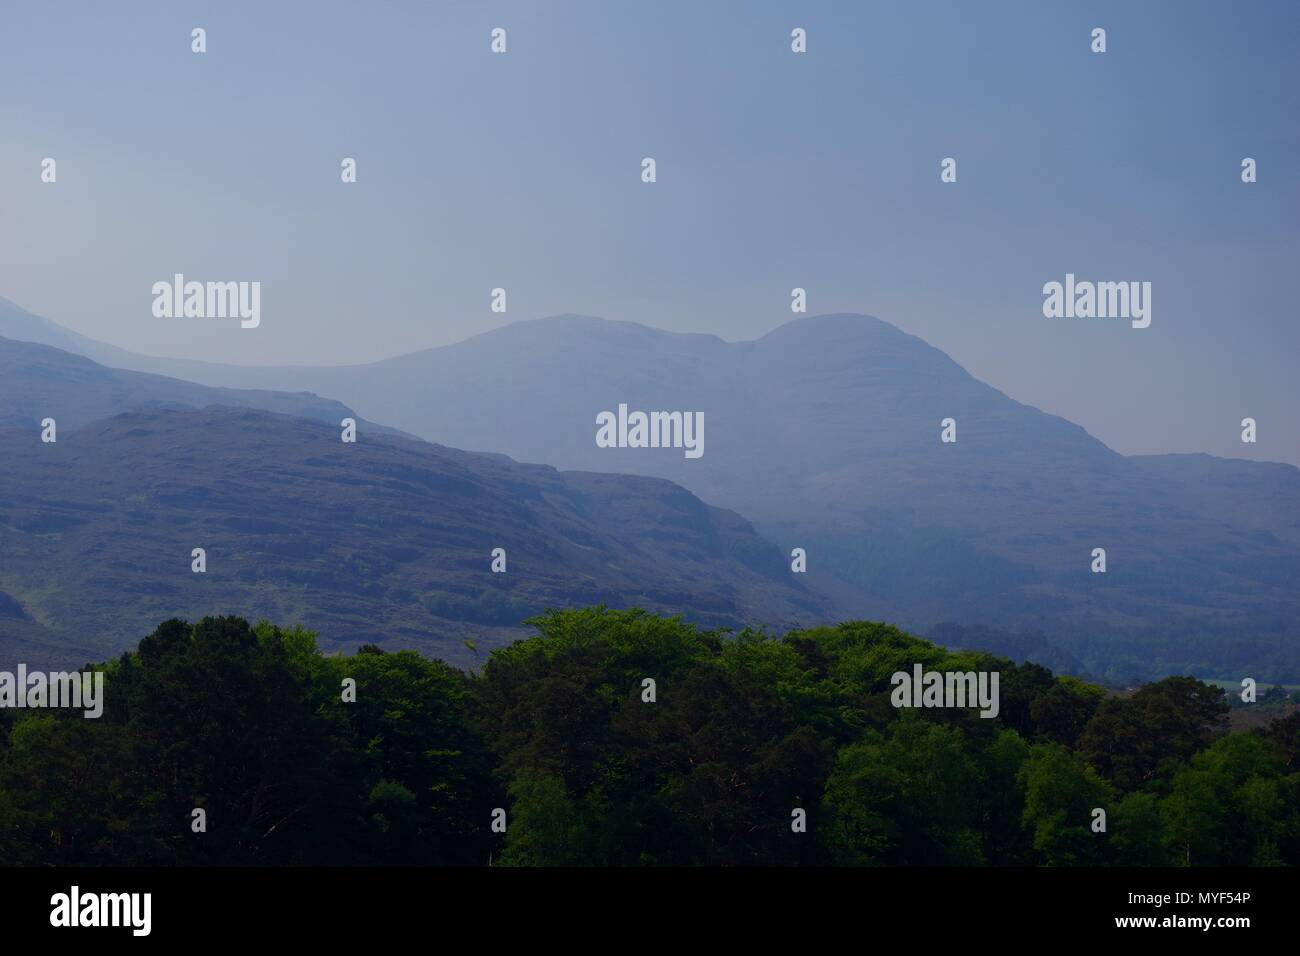 Torridon Mountains and Woodland of NW Scottish Highlands under Smoky Sky of a Wildfire. UK. - Stock Image